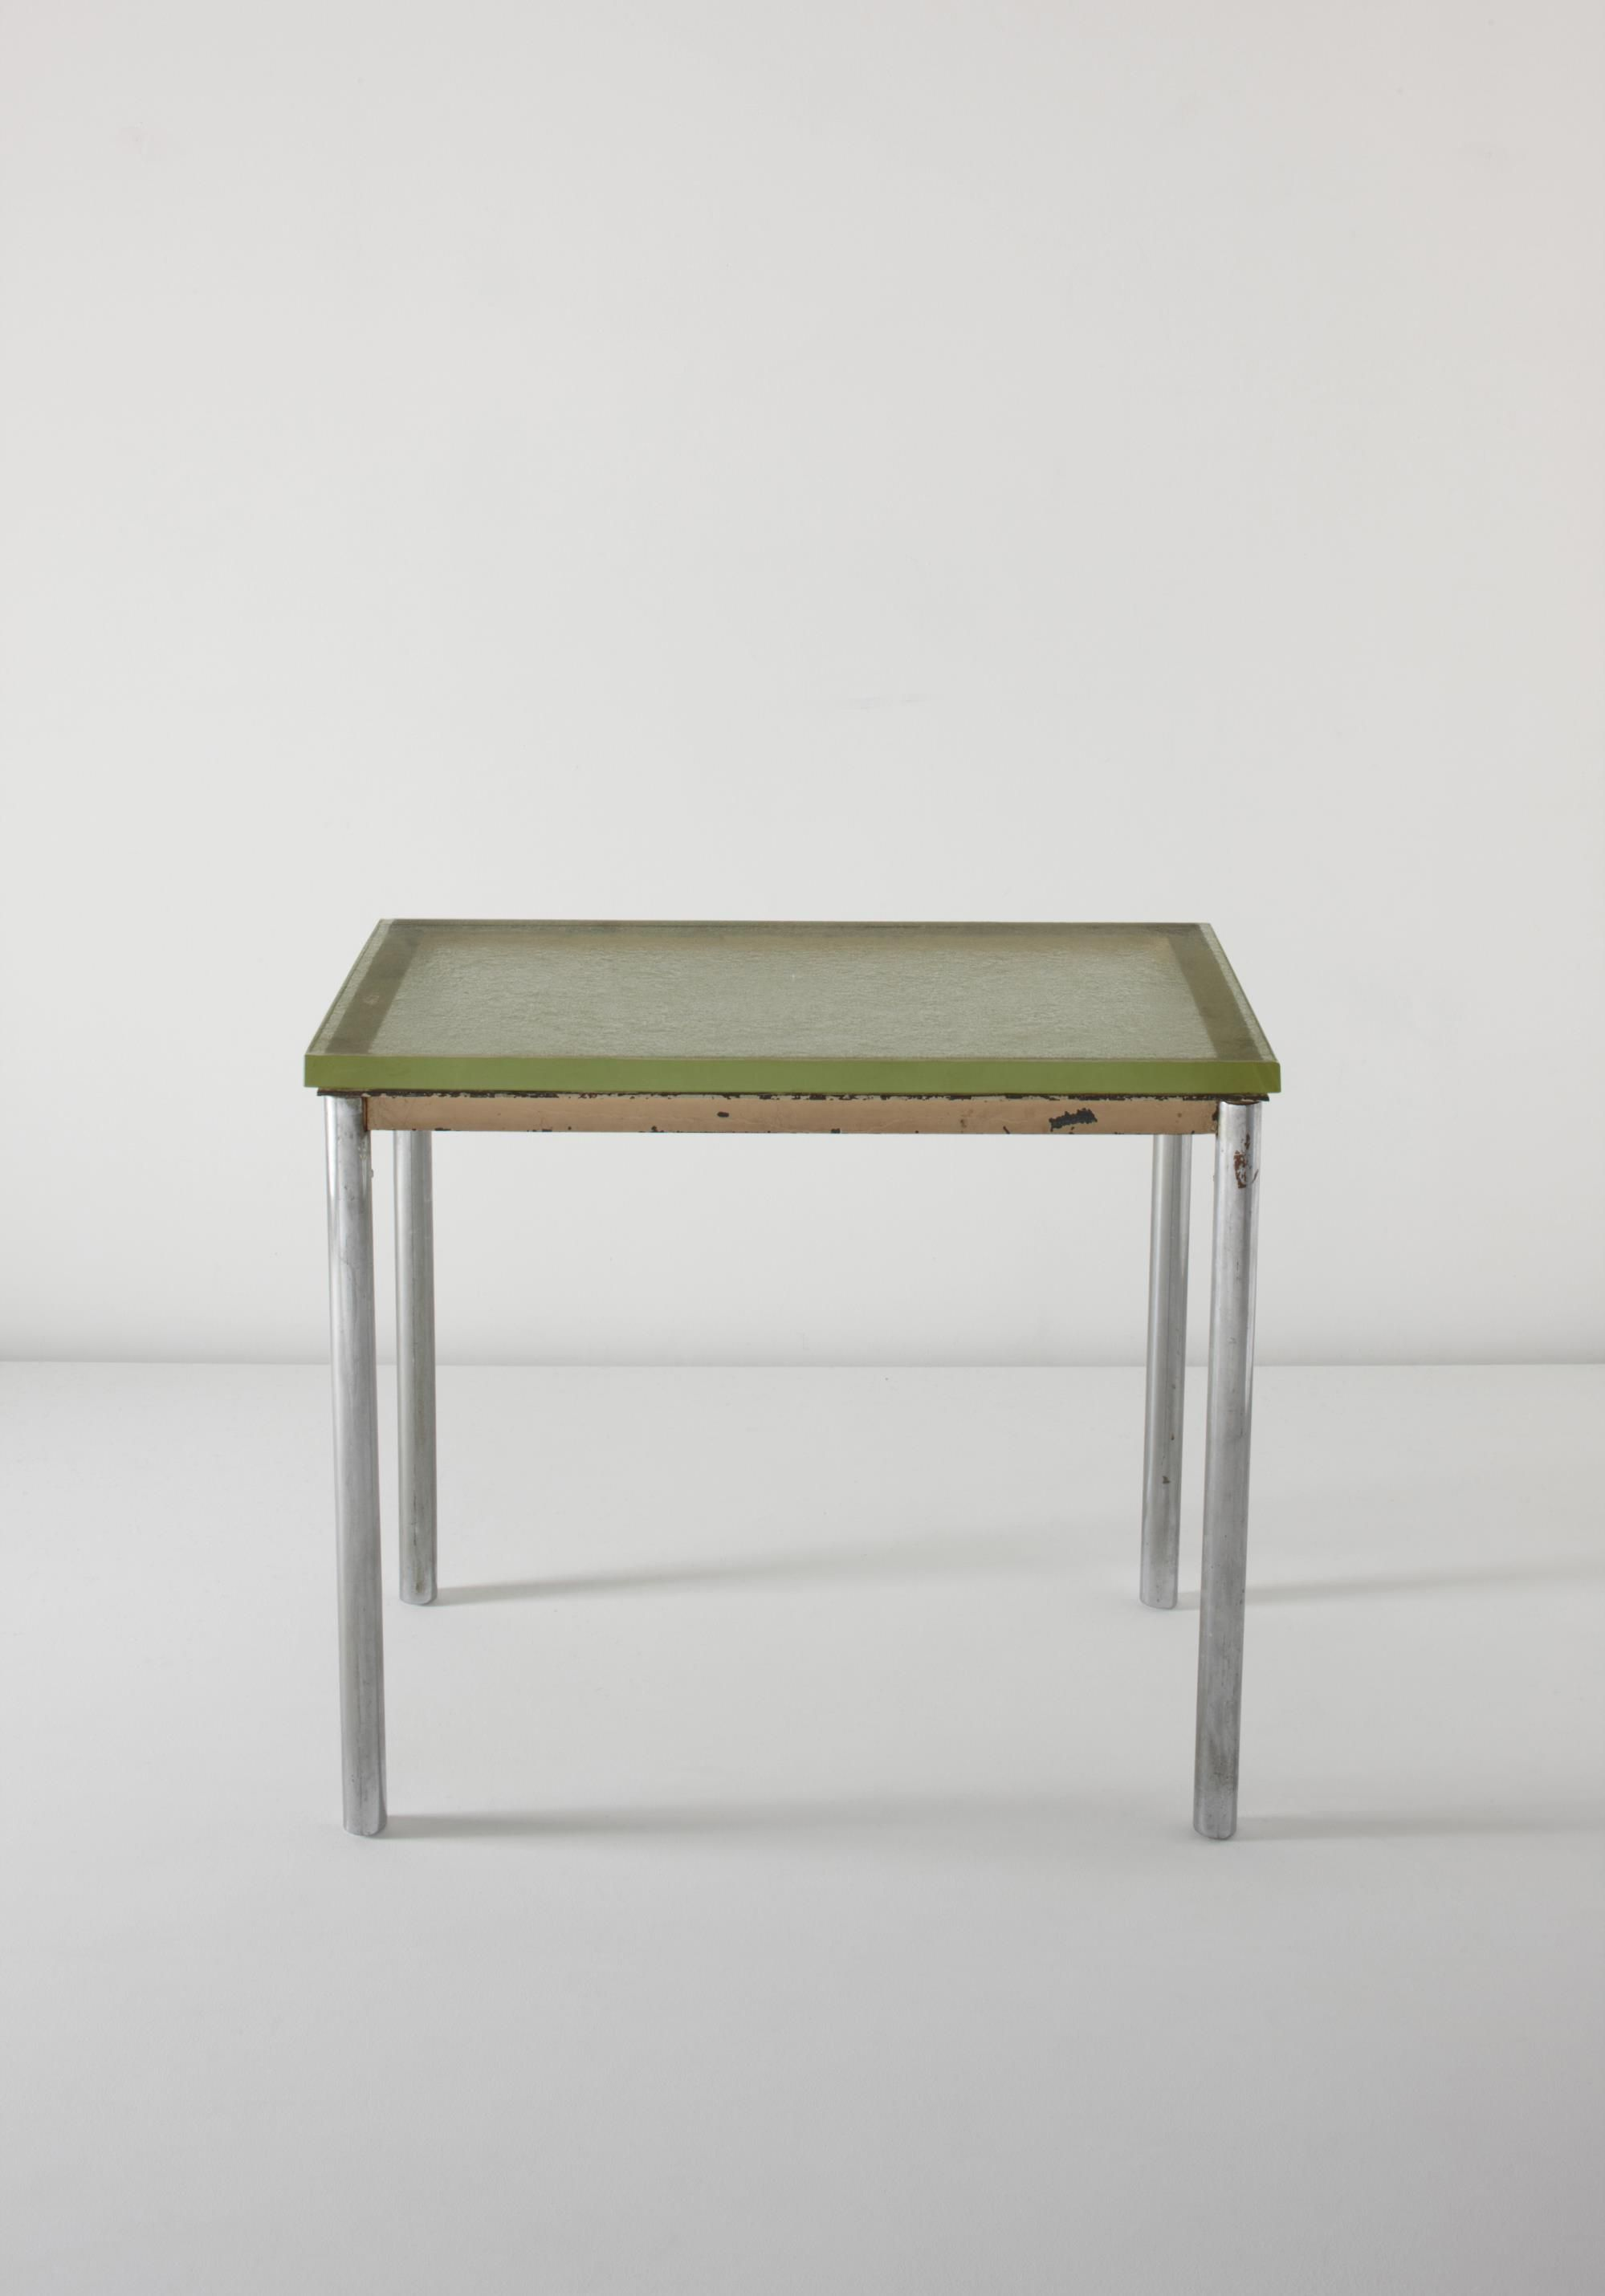 """LE CORBUSIER, PIERRE JEANNERET AND CHARLOTTE PERRIAND Rare table, model no. B307, ca. 1930  Frosted glass, chrome-plated tubular metal, painted metal. 28 5/8 x 32 1/2 x 18 7/8 in. (72.8 x 82.8 x 47.8 cm.) Manufactured by Thonet Frères, France; glass manufactured by Saint-Gobain, France. One leg with manufacturer's metal label with logo and """"Thonet."""""""